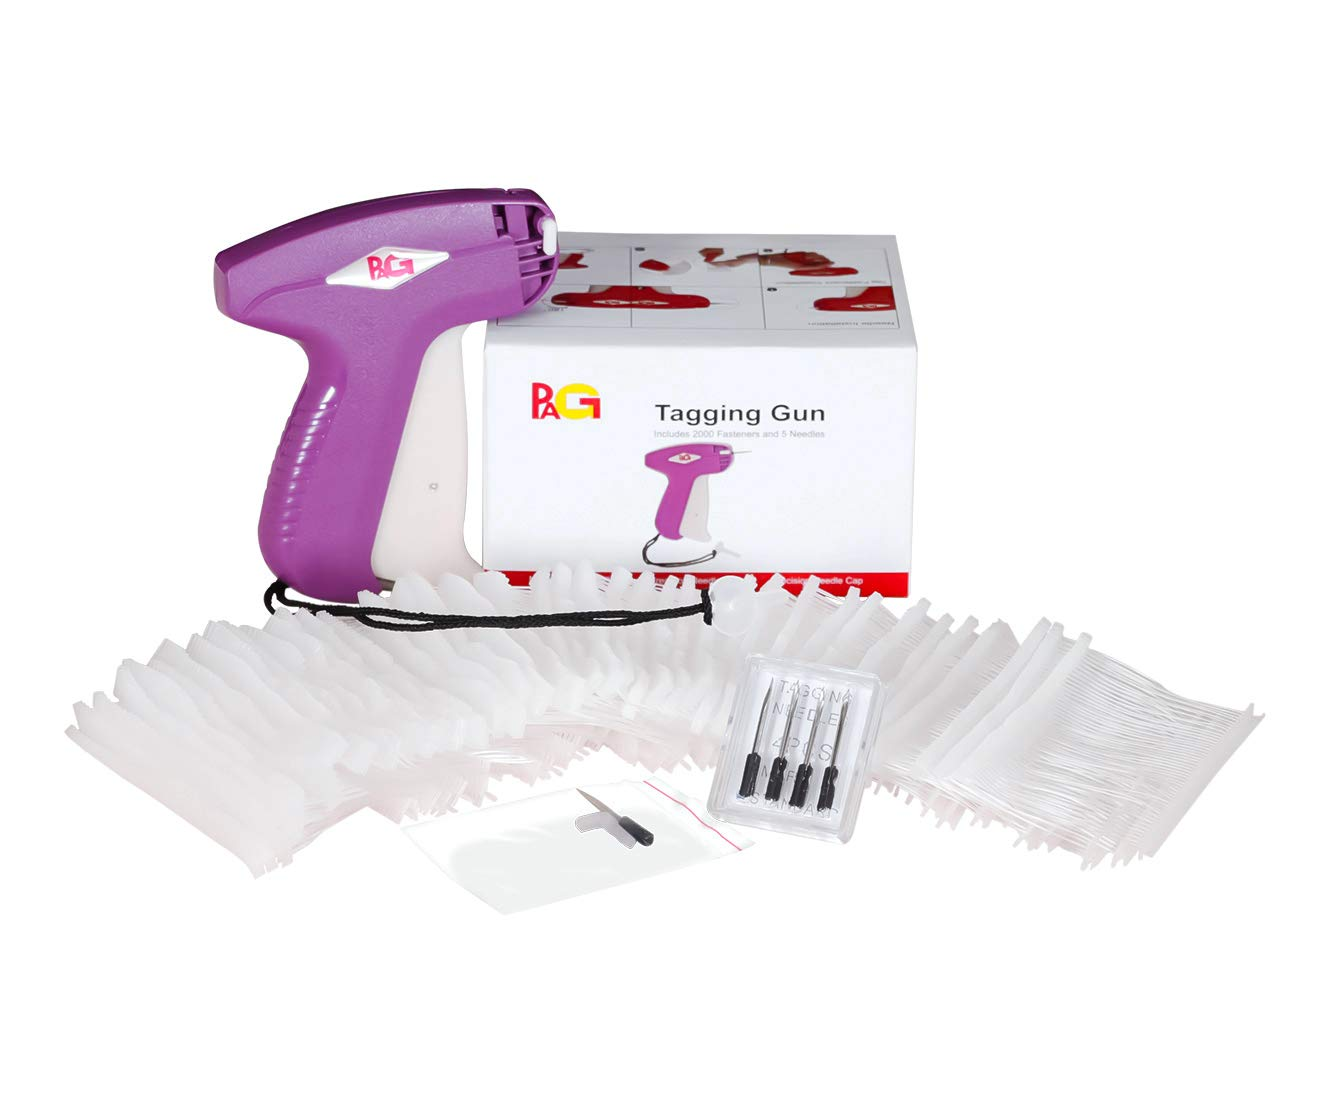 PAG XMS S13 Price Tag Standard Attacher Tagging Gun for Clothing with 5 Needles and 2000 Barbs Fasteners Purple